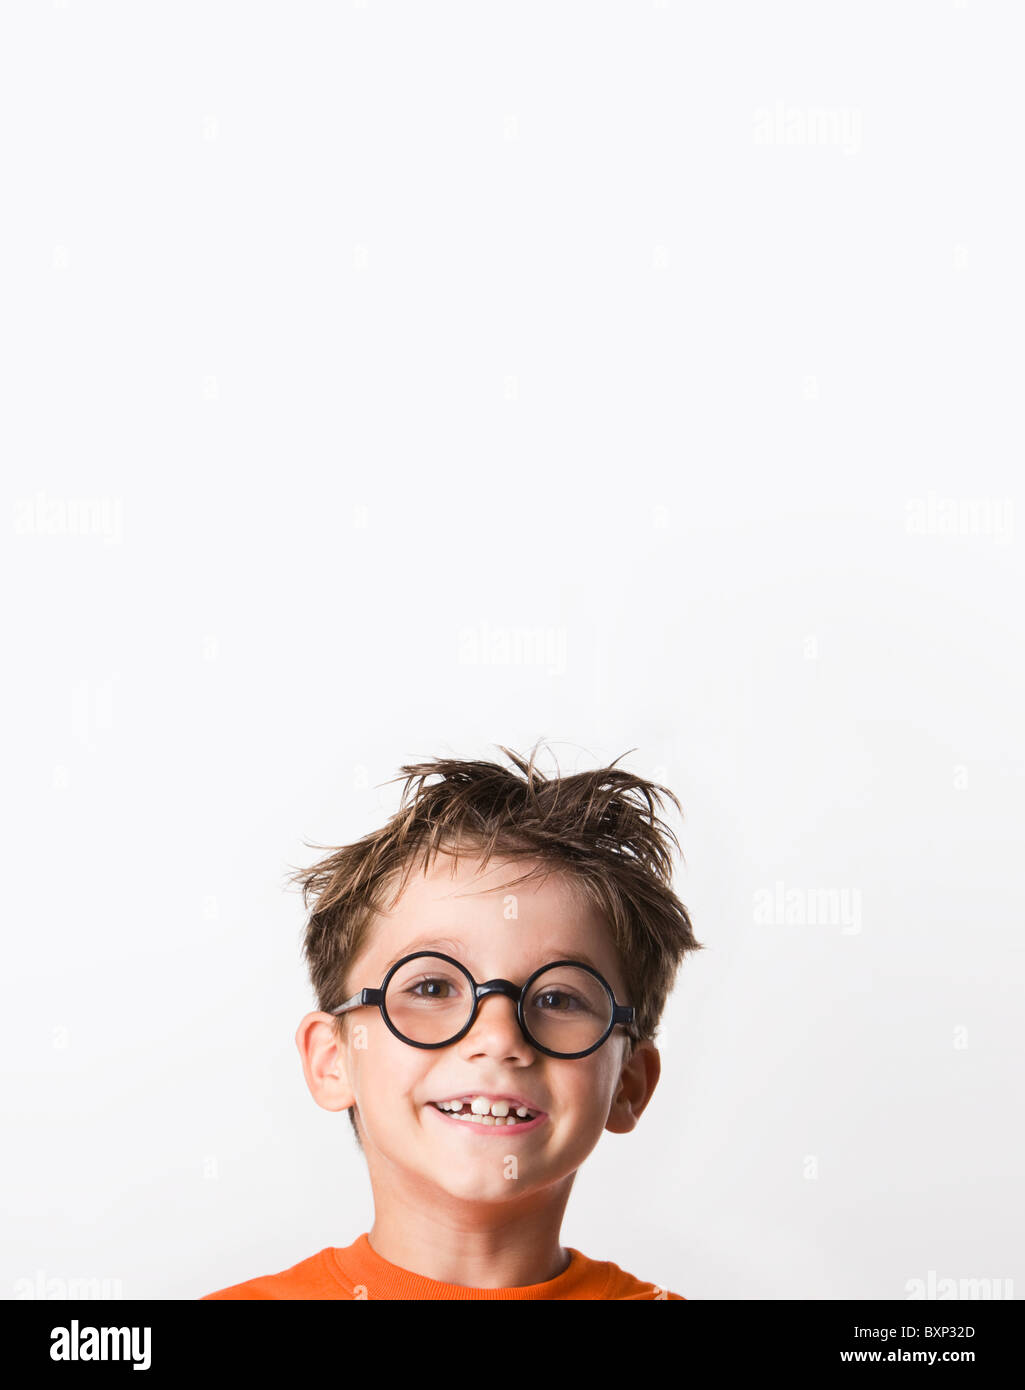 Image of happy child with tousled hair looking at camera with smile - Stock Image